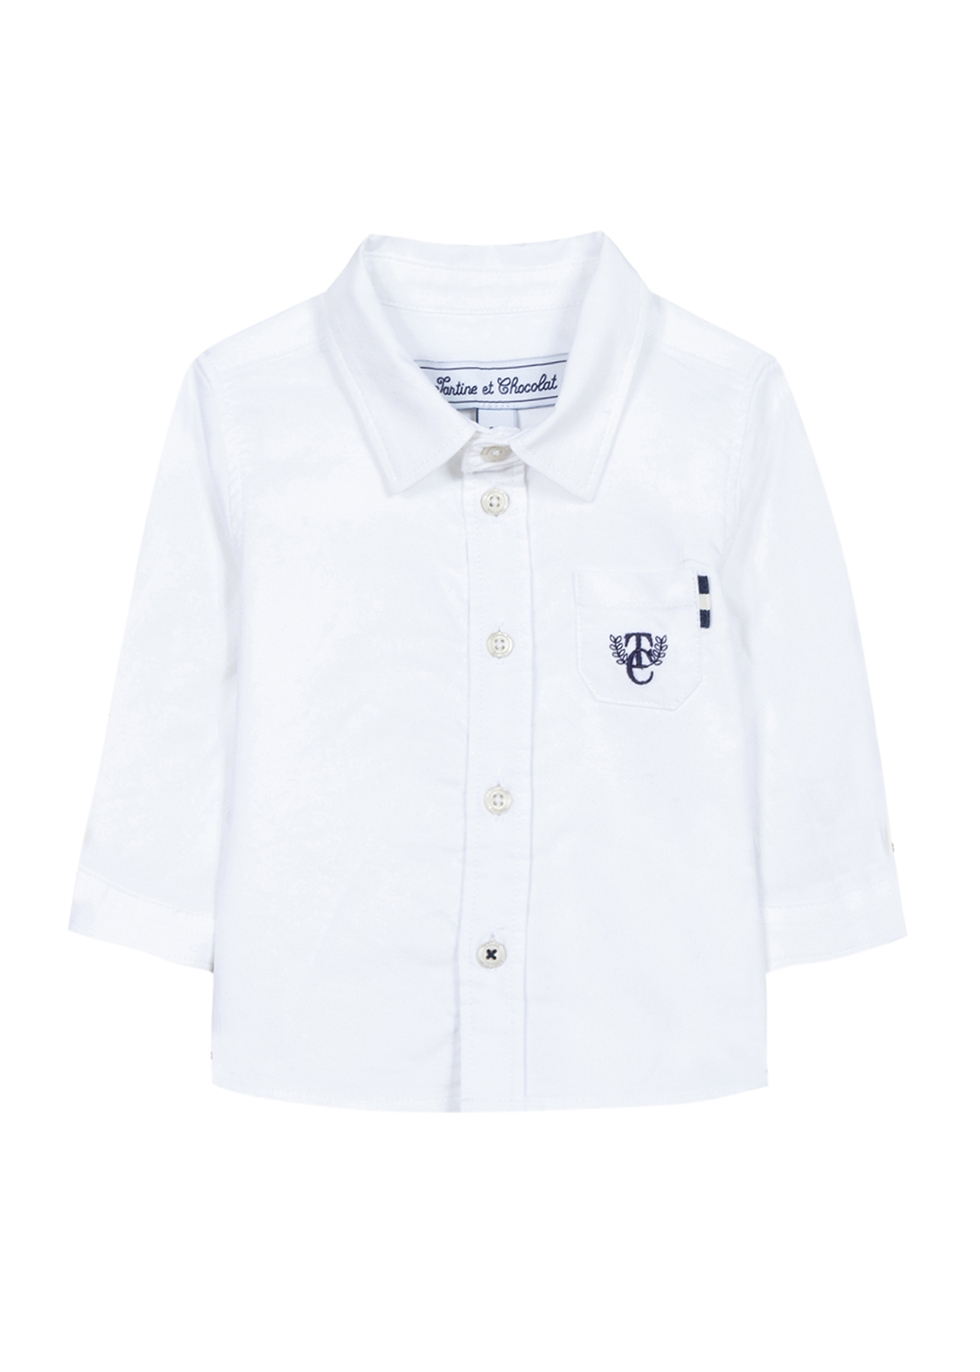 White logo-embroidered cotton shirt (6-12 months)